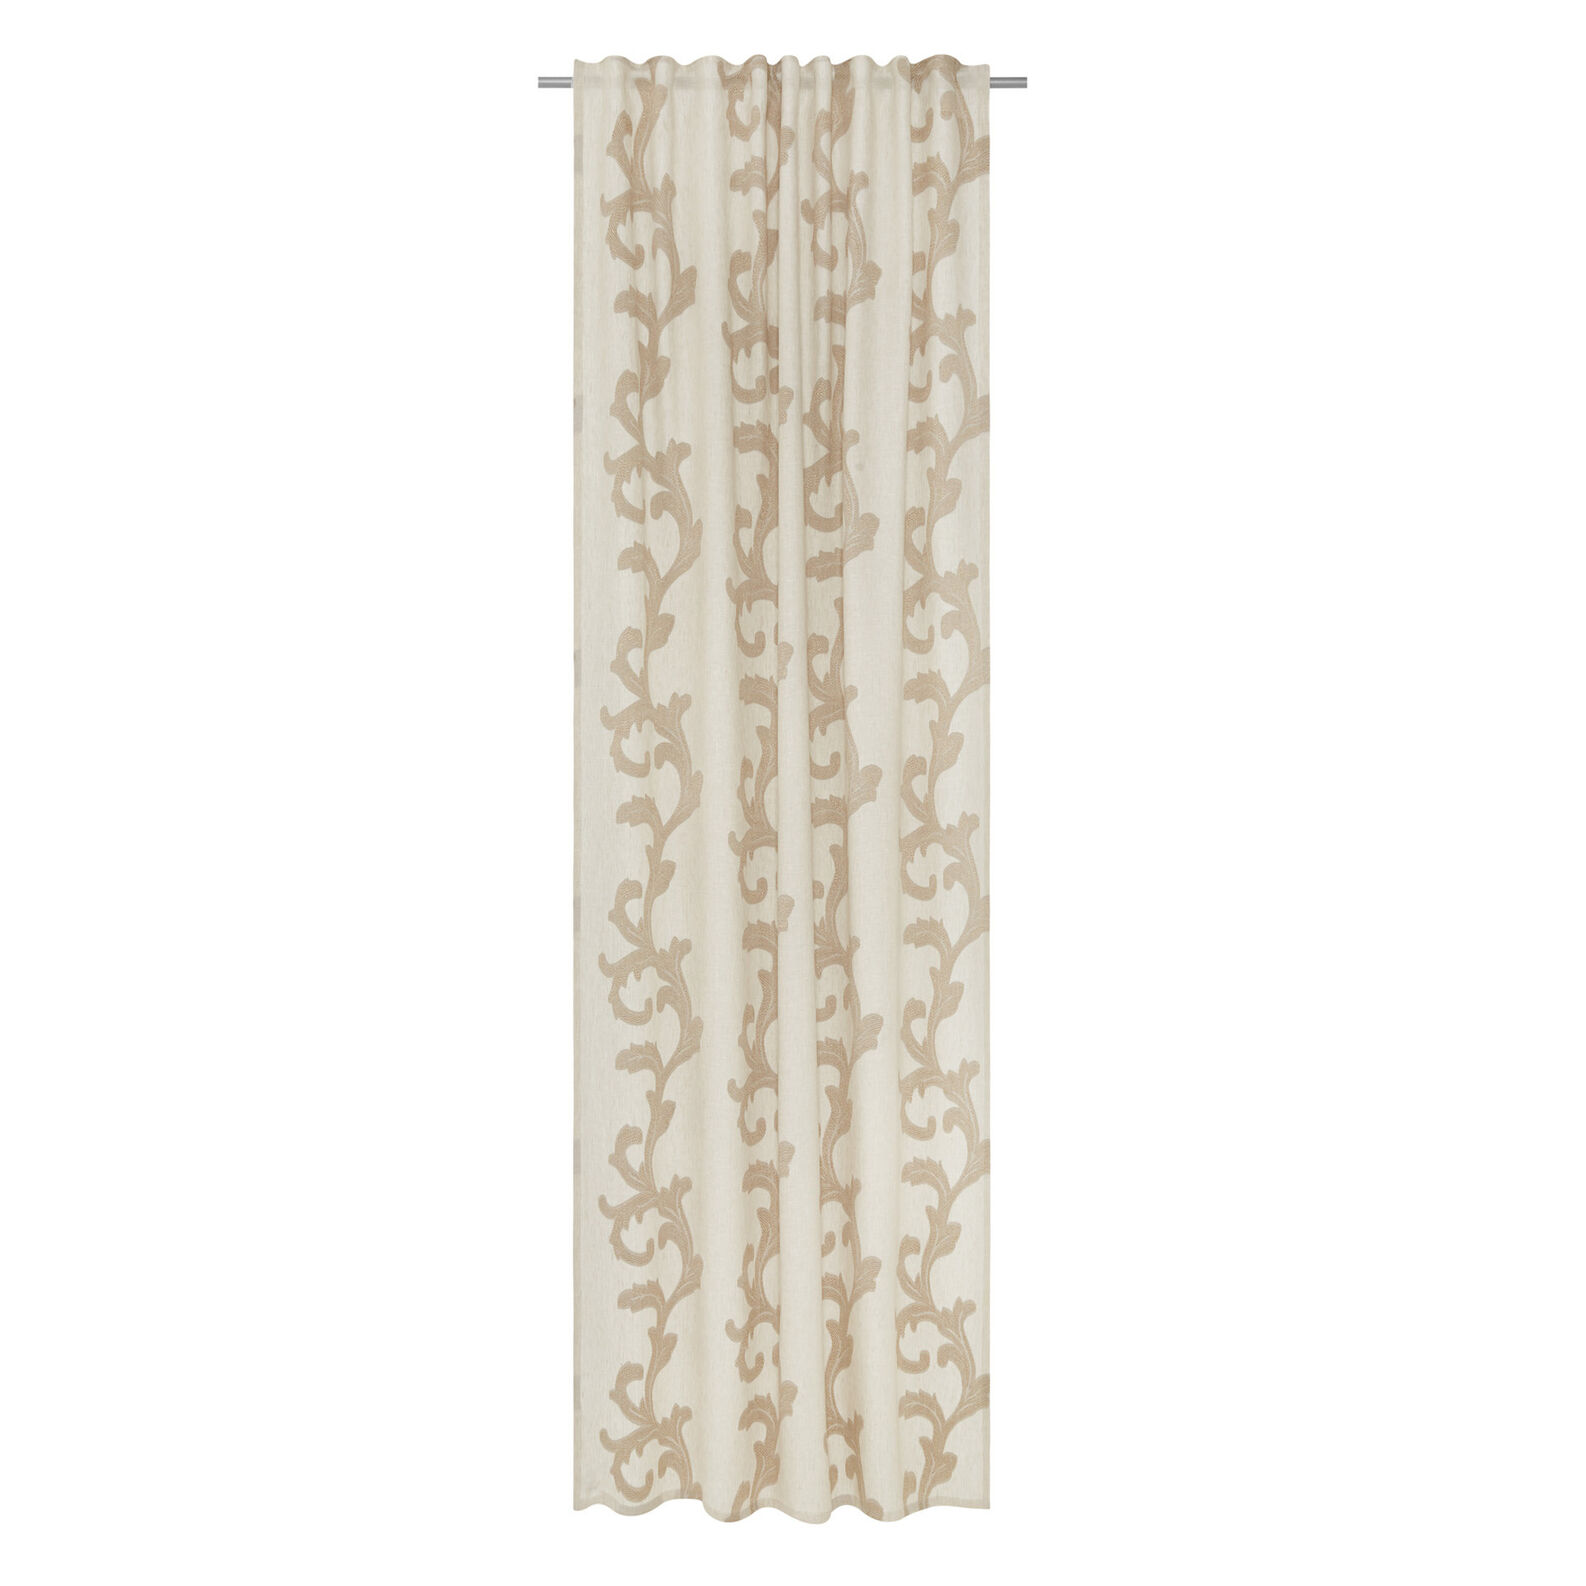 Jacquard linen blend curtain with hidden loops